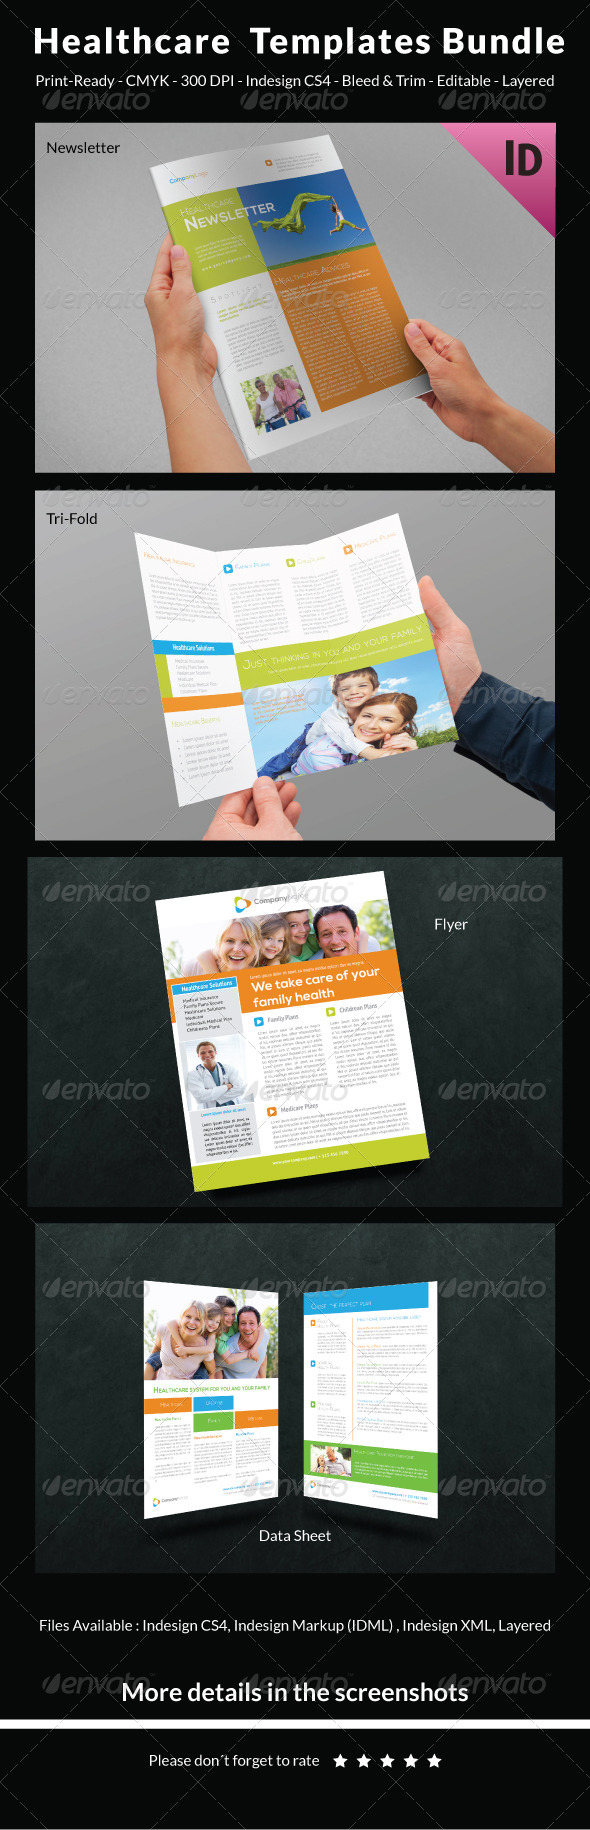 Healthcare Templates Bundle - Print Templates